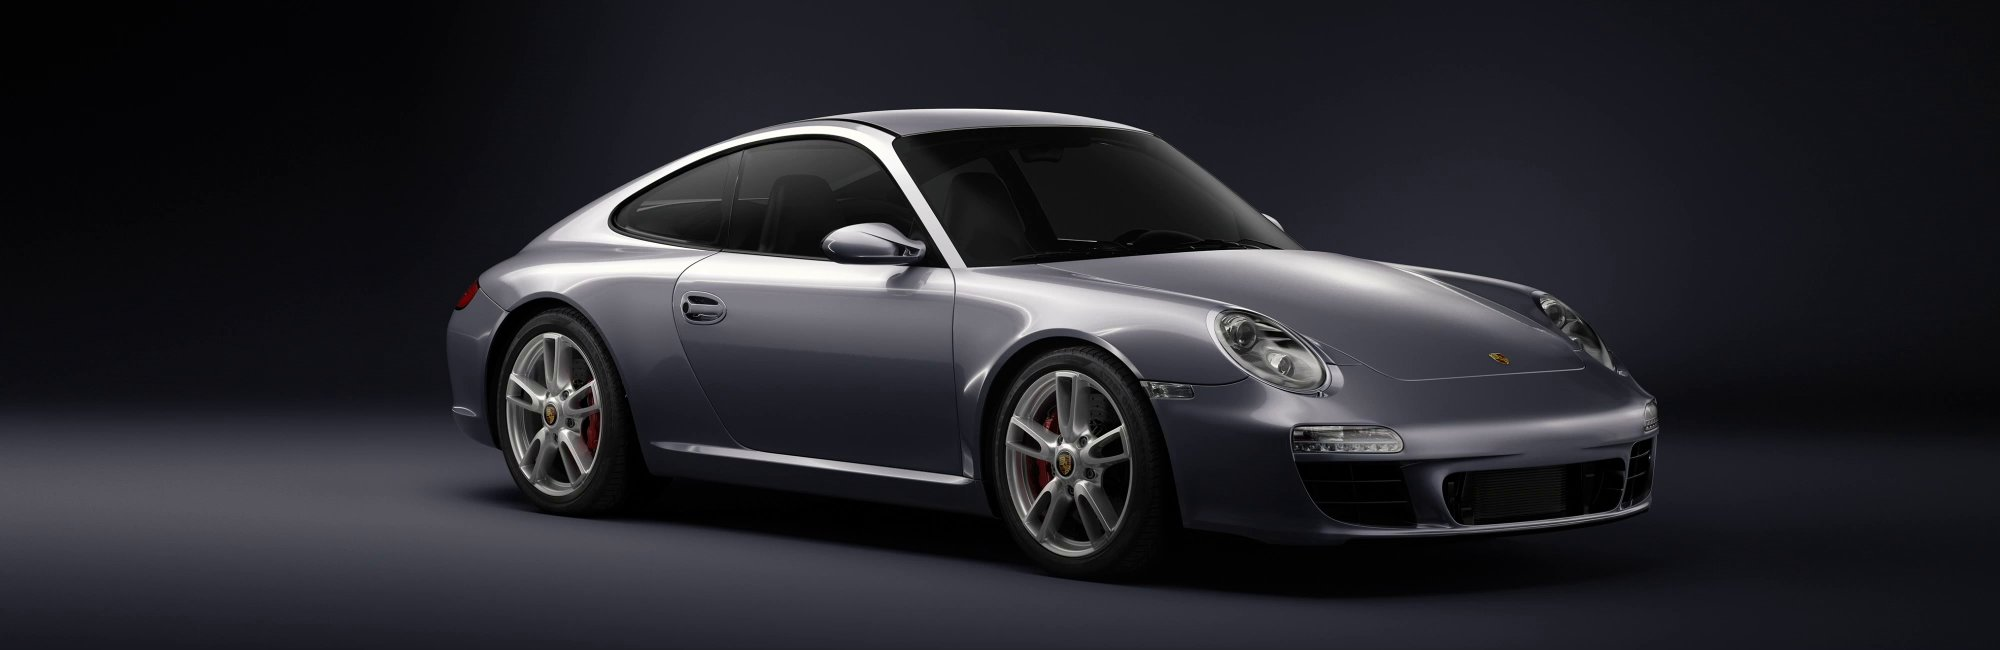 Sales of new parts for all Porsche models: 356, 911, 912, 914, 924, 928, 944, 964, 965, 993, 968, 928, Boxster, Cayman, 996 and 997, Turbo, GT2, GT3, RS, Cayenne